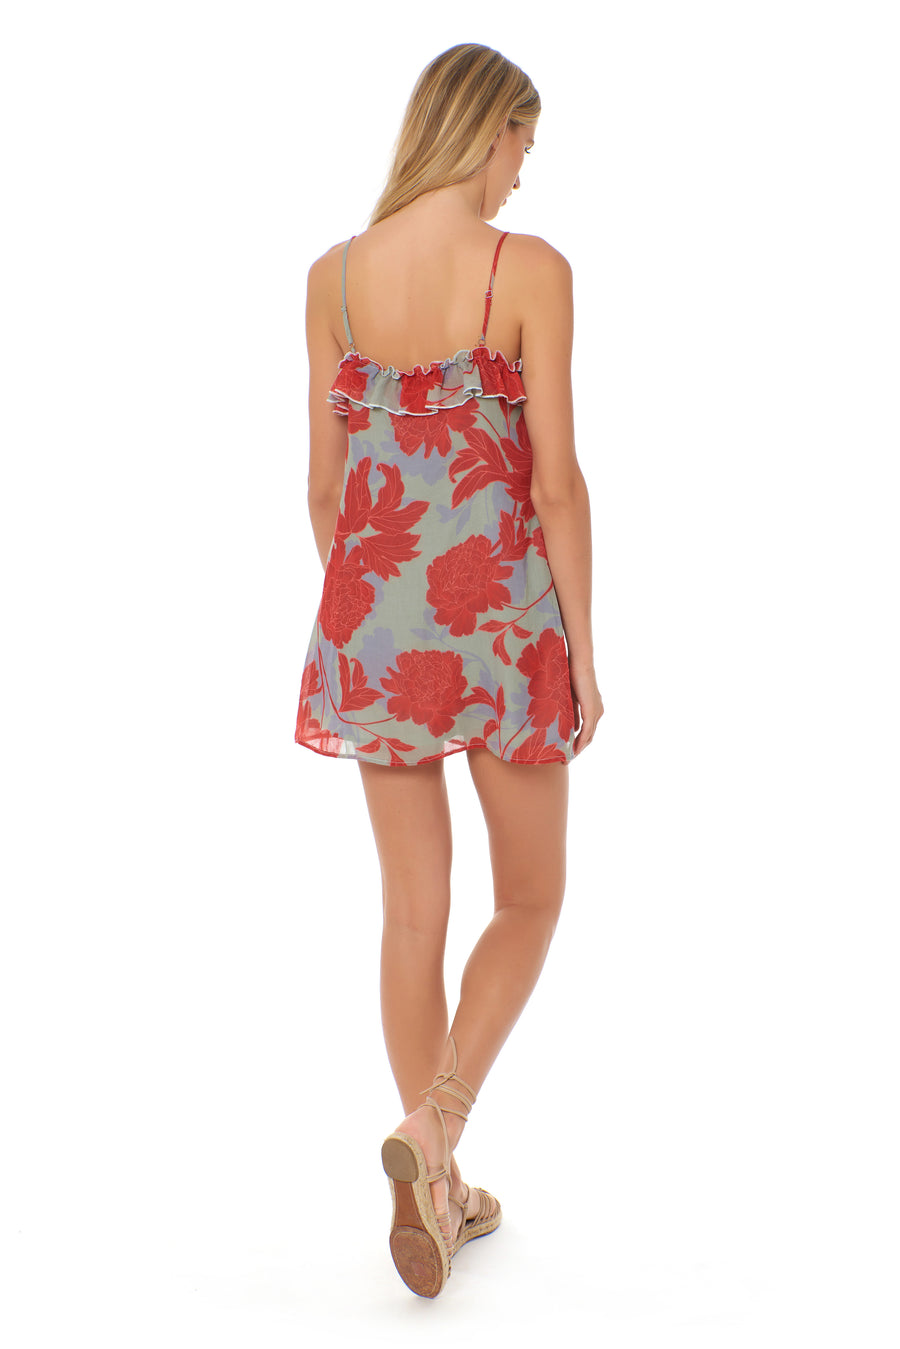 Anya Dress - Floral Vermillion - Red Carter